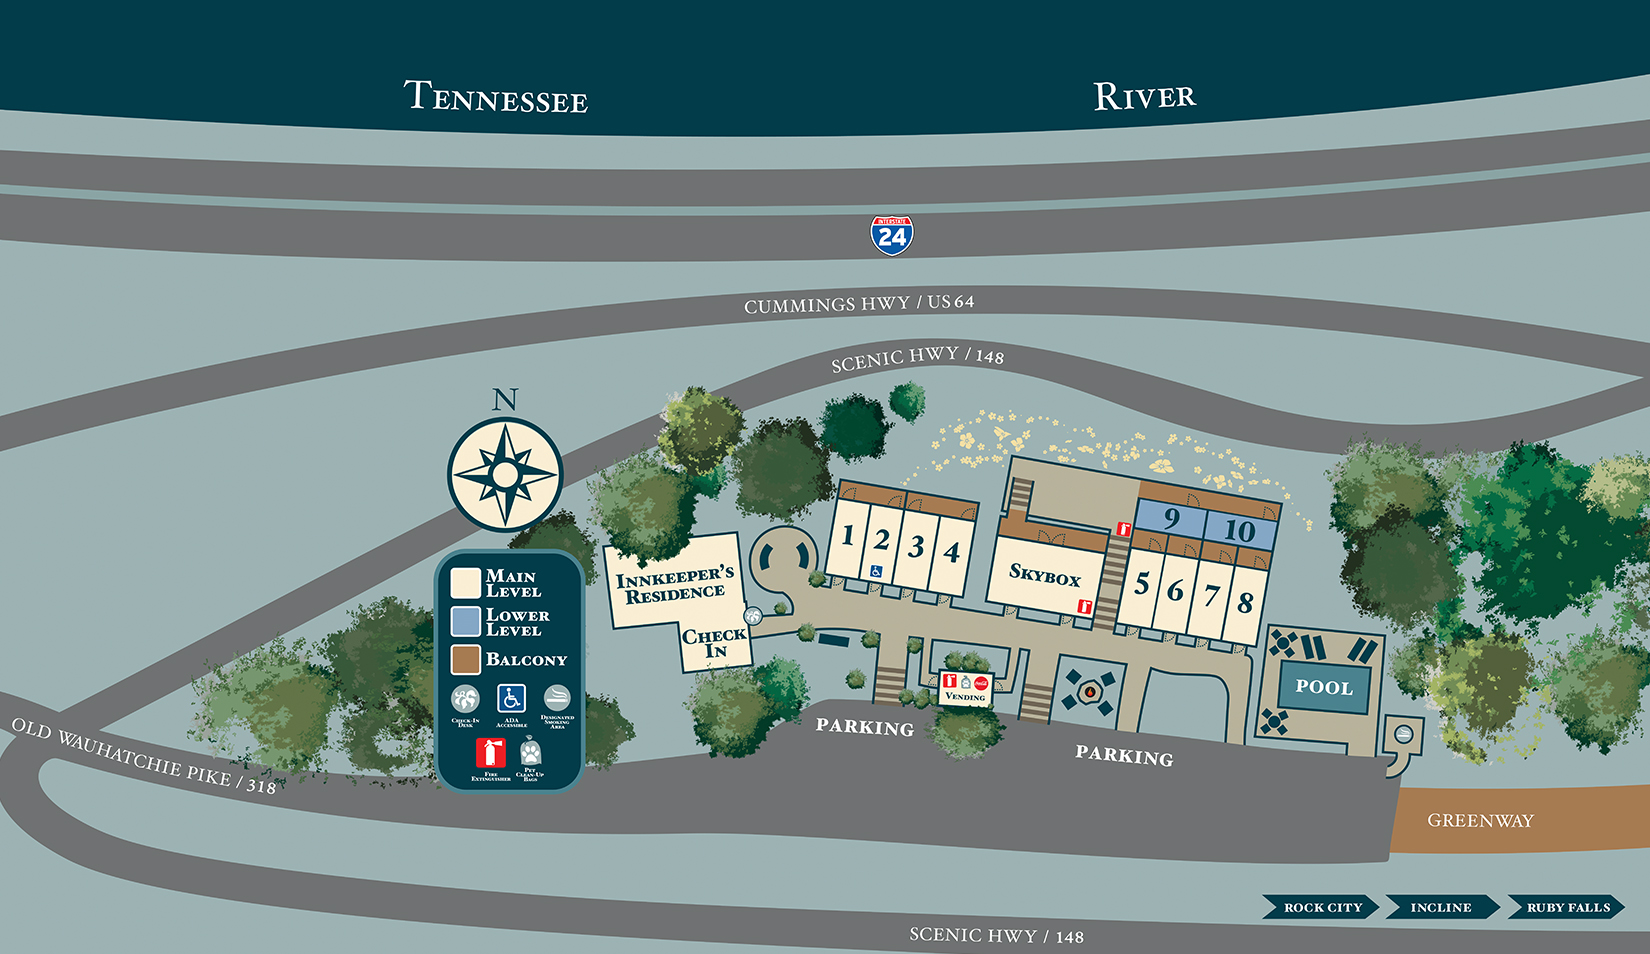 Illustrated map of RiverView Inn property